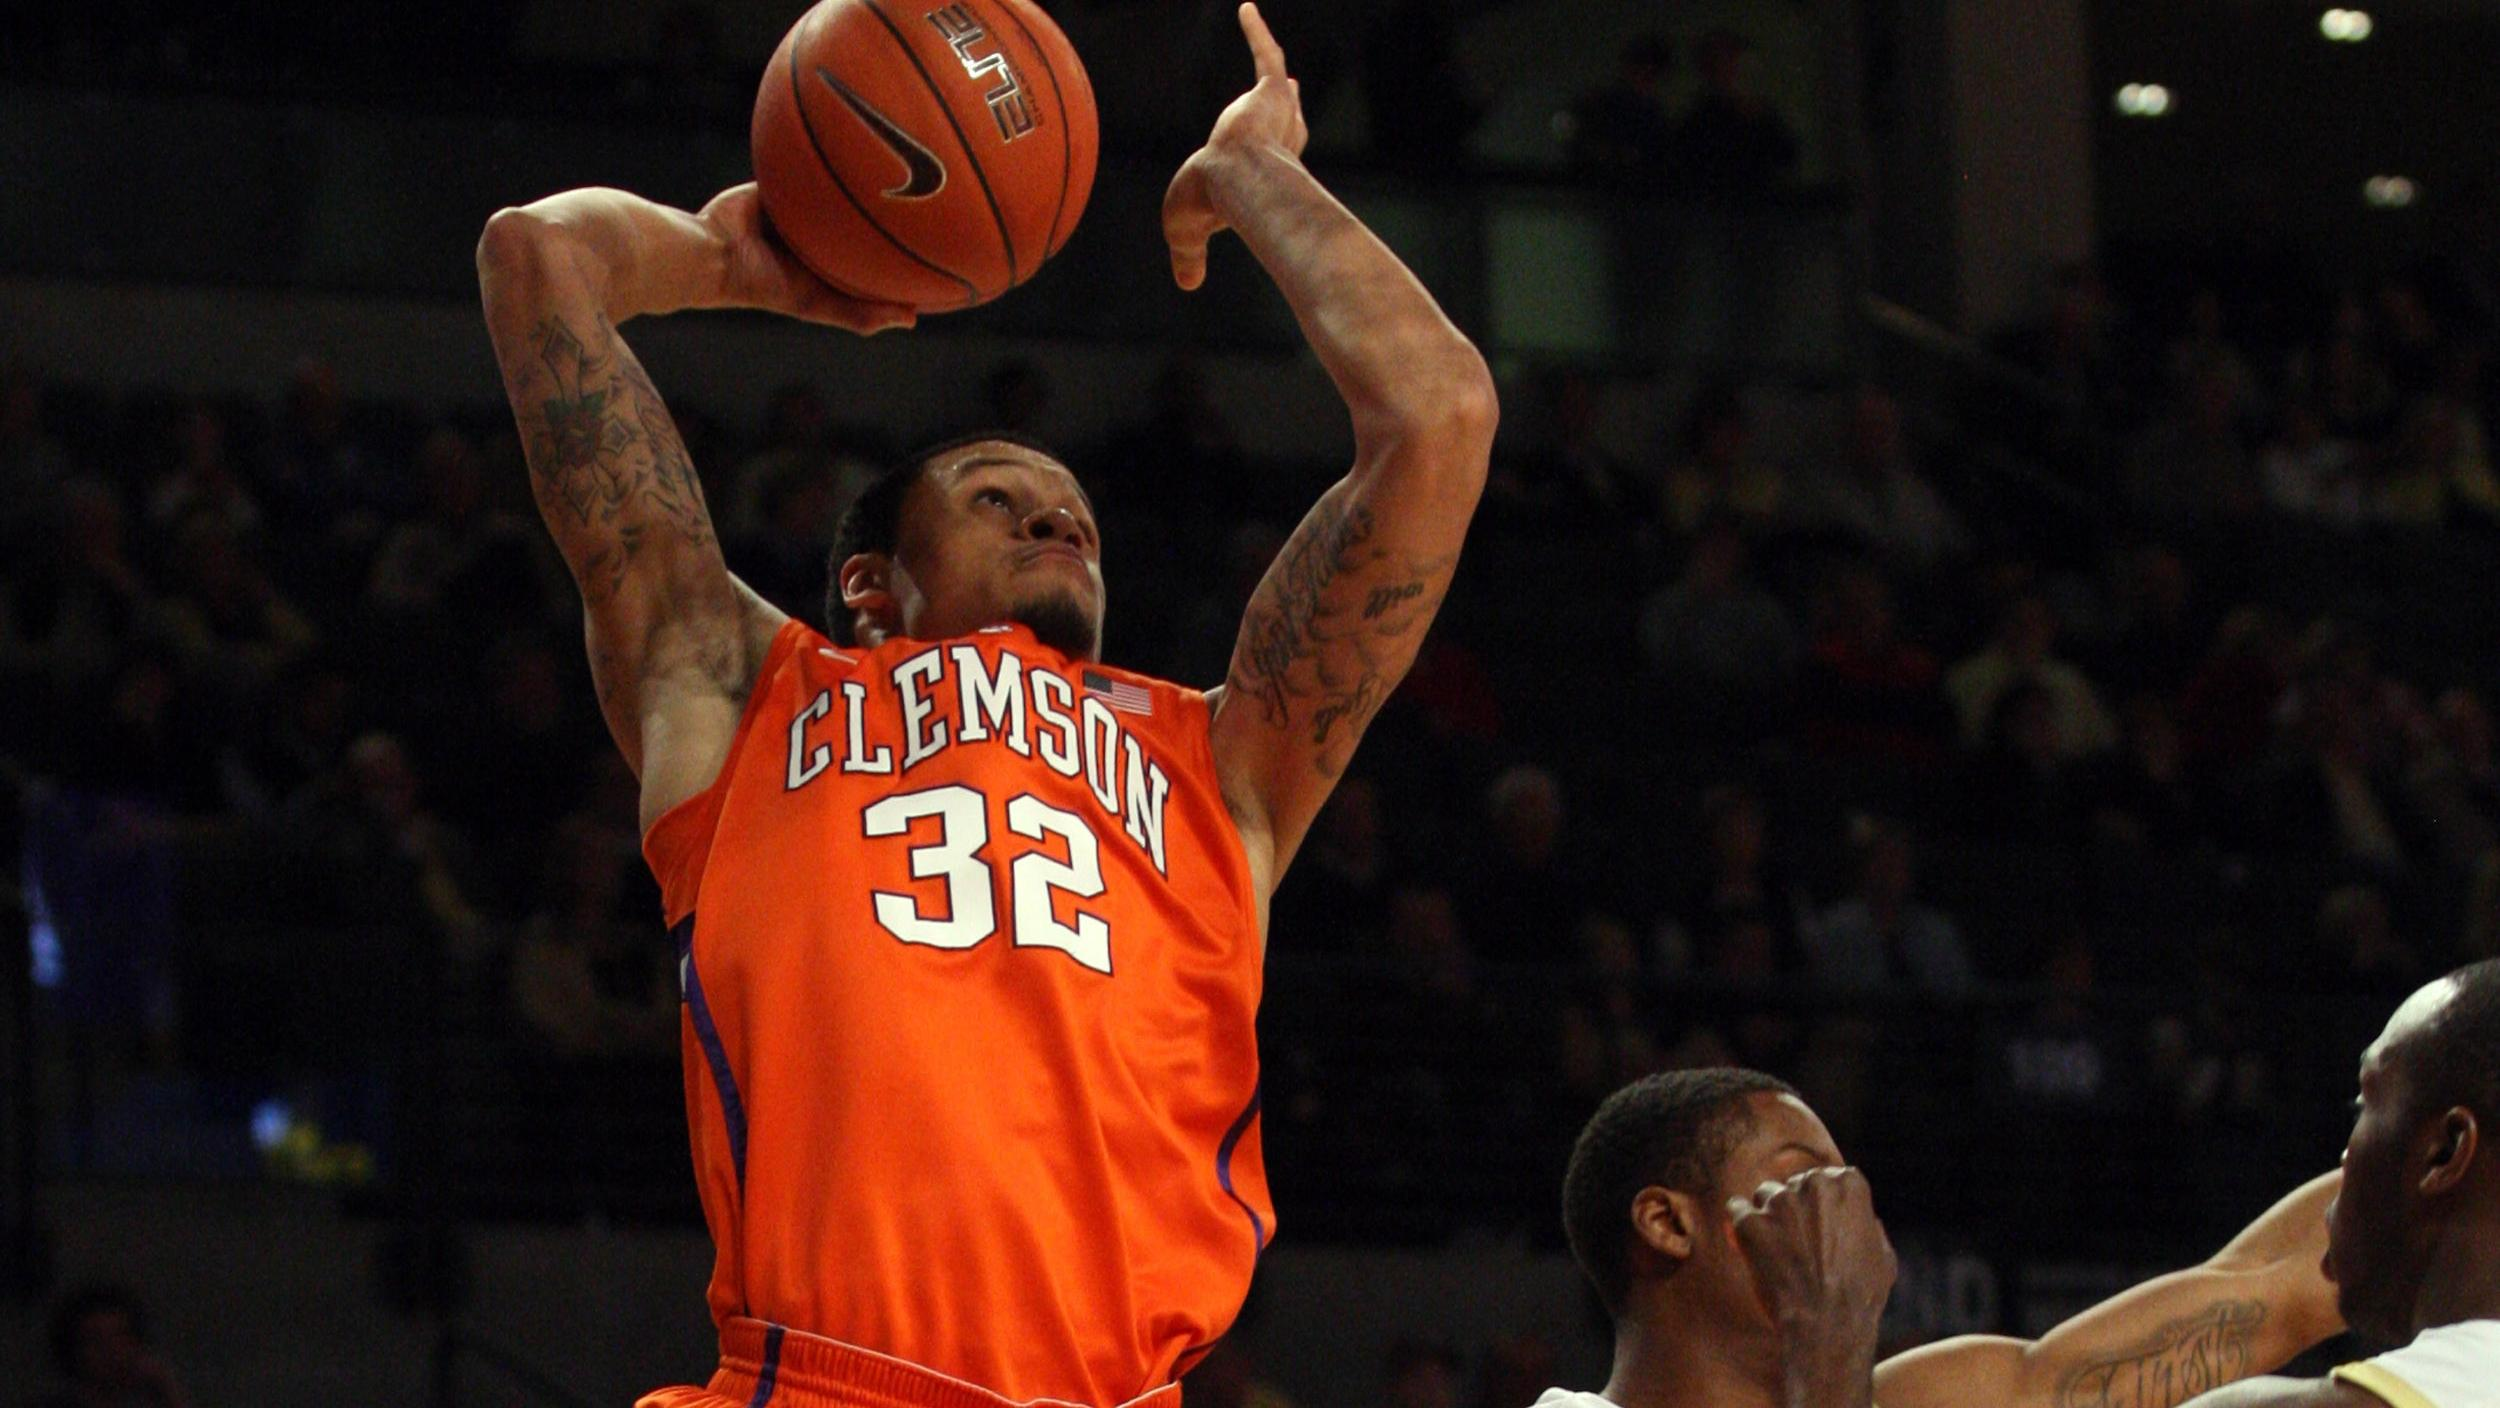 Tigers to Face Florida State in ACC Tournament First Round Thursday